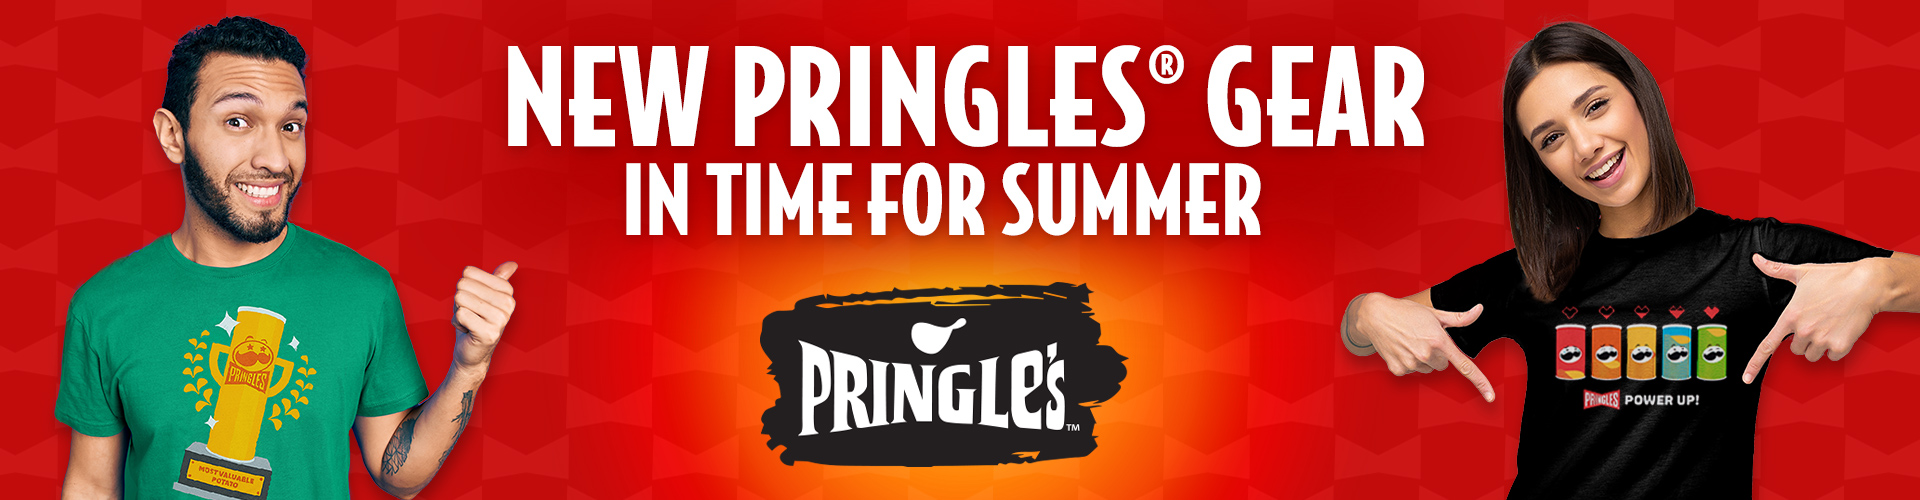 New Pringles® Gear in Time for Summer